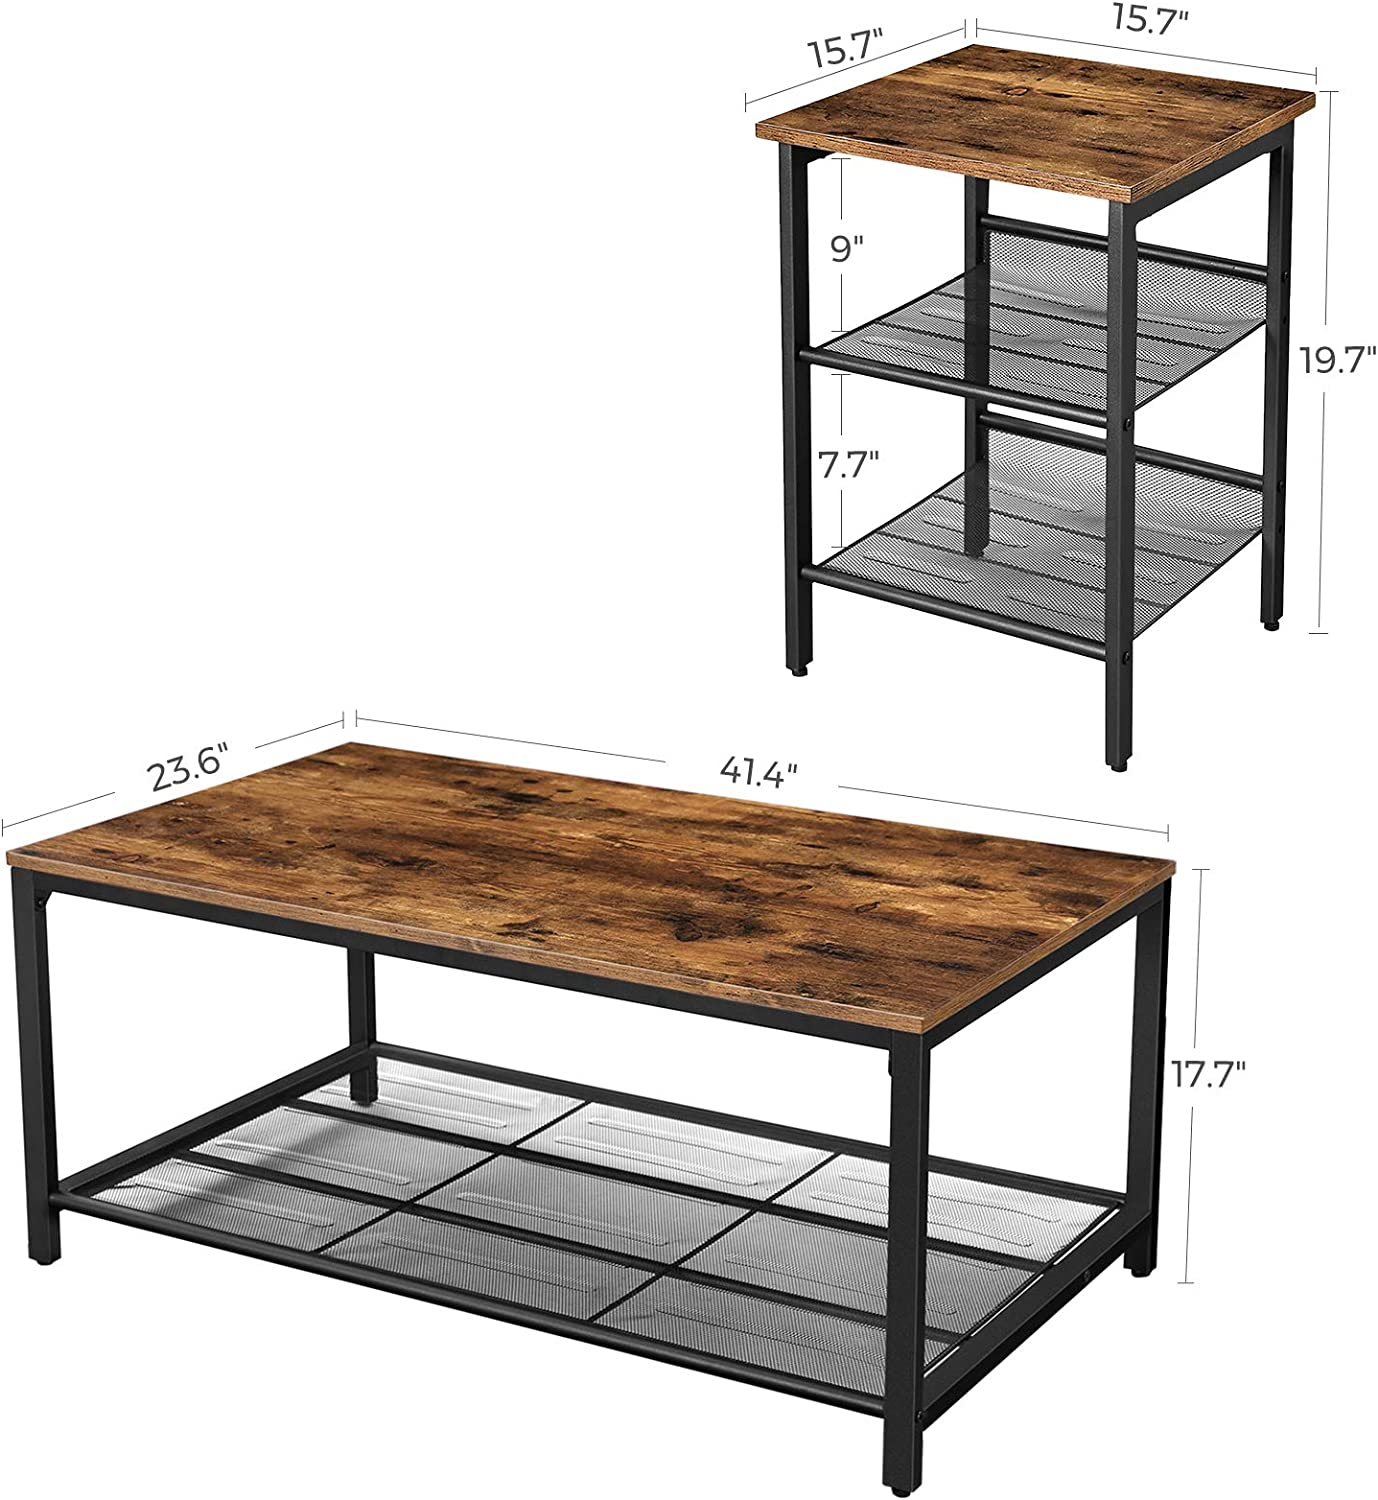 Metal Mesh Shelves Rustic Brown and Black ULCT64X and ULET24X VASAGLE Set of 2 Side Tables and 1 Coffee Table Bundle Adjustable Feet Industrial Design Easy Assembly Living Room Furniture Set